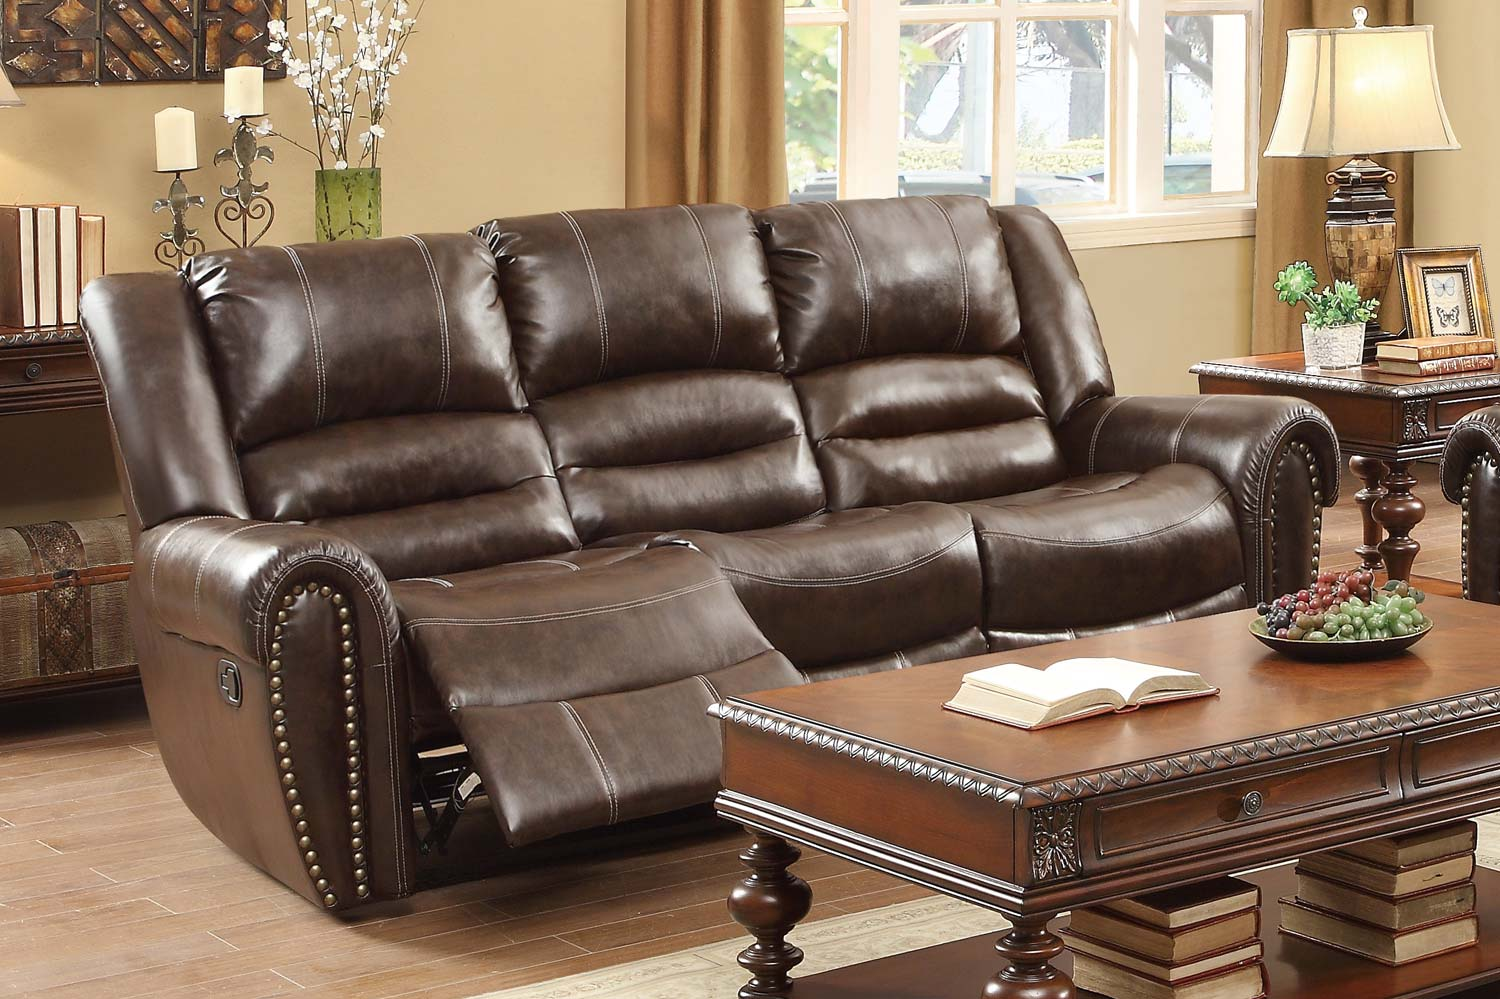 Double Reclining Sofa - Dark Brown Bonded leather Match 90 x 385 x